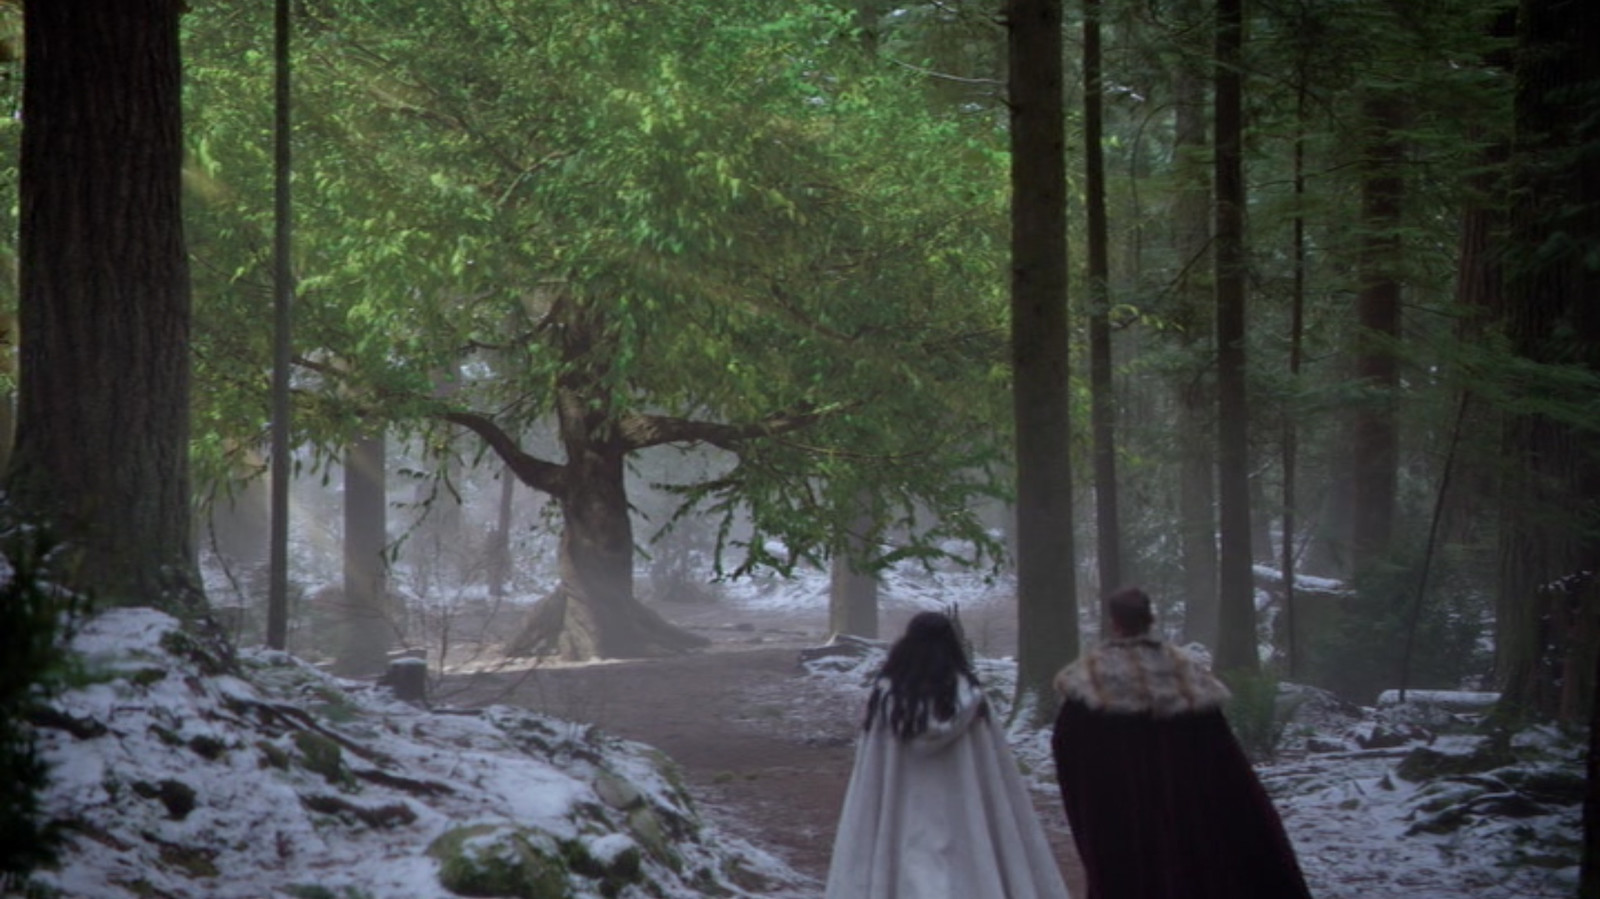 Tree of Wisdom Effect - Once Upon  a Time Season 4 - Final Shot by ZOIC Studios